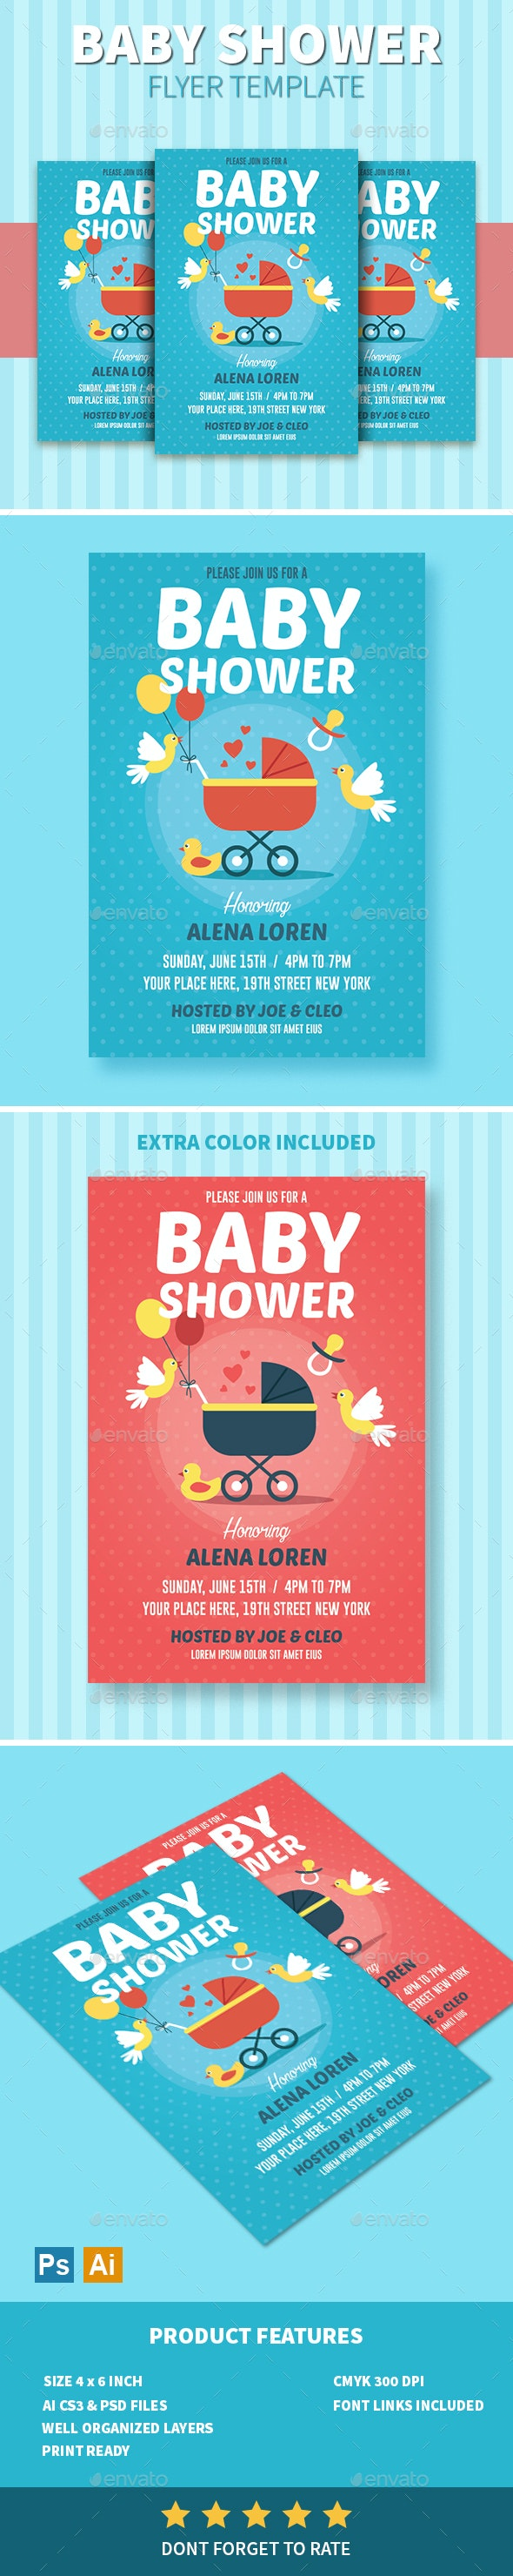 Baby Shower Flyer - Invitations Cards & Invites